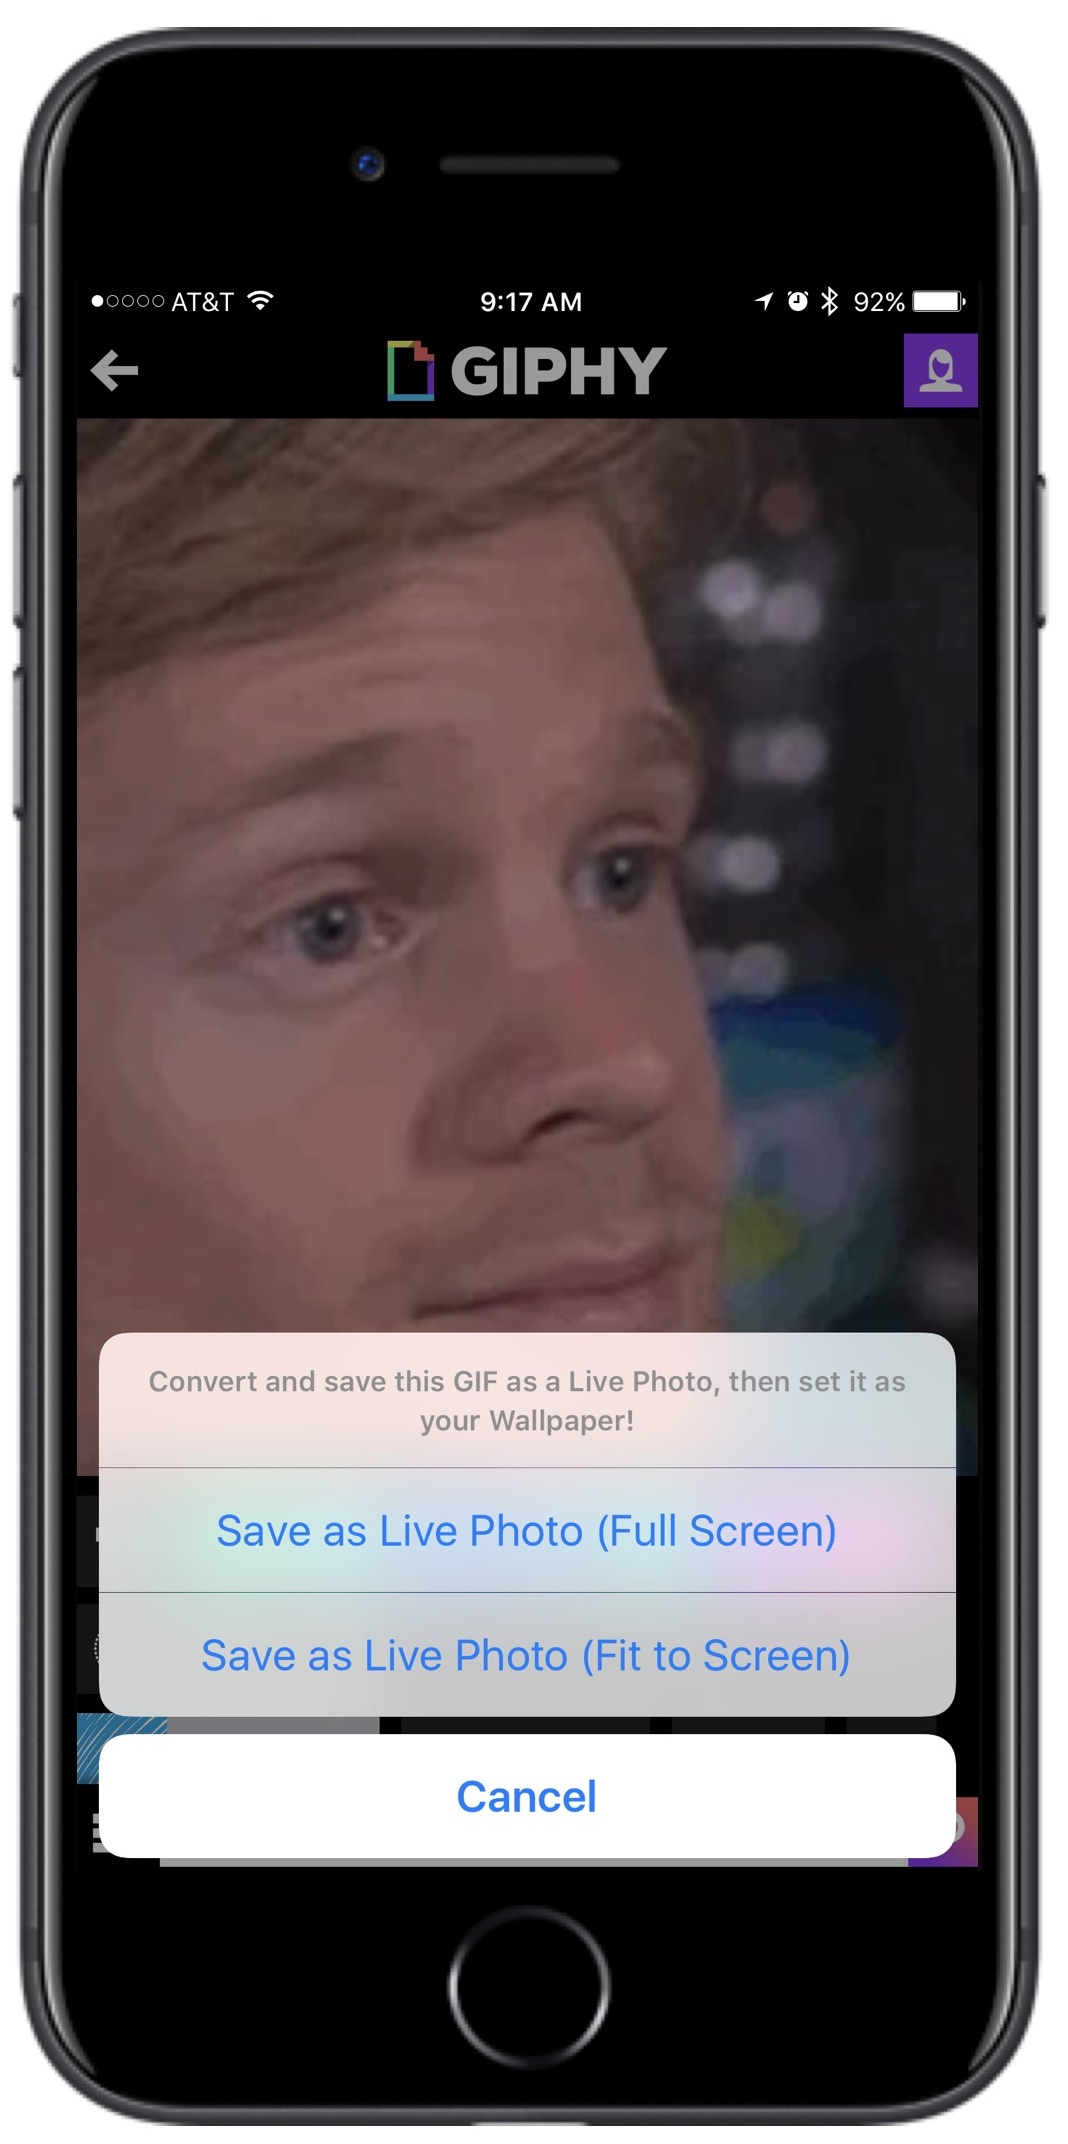 Giphy iOS App Gains Ability to Turn GIFs Into Live Photos